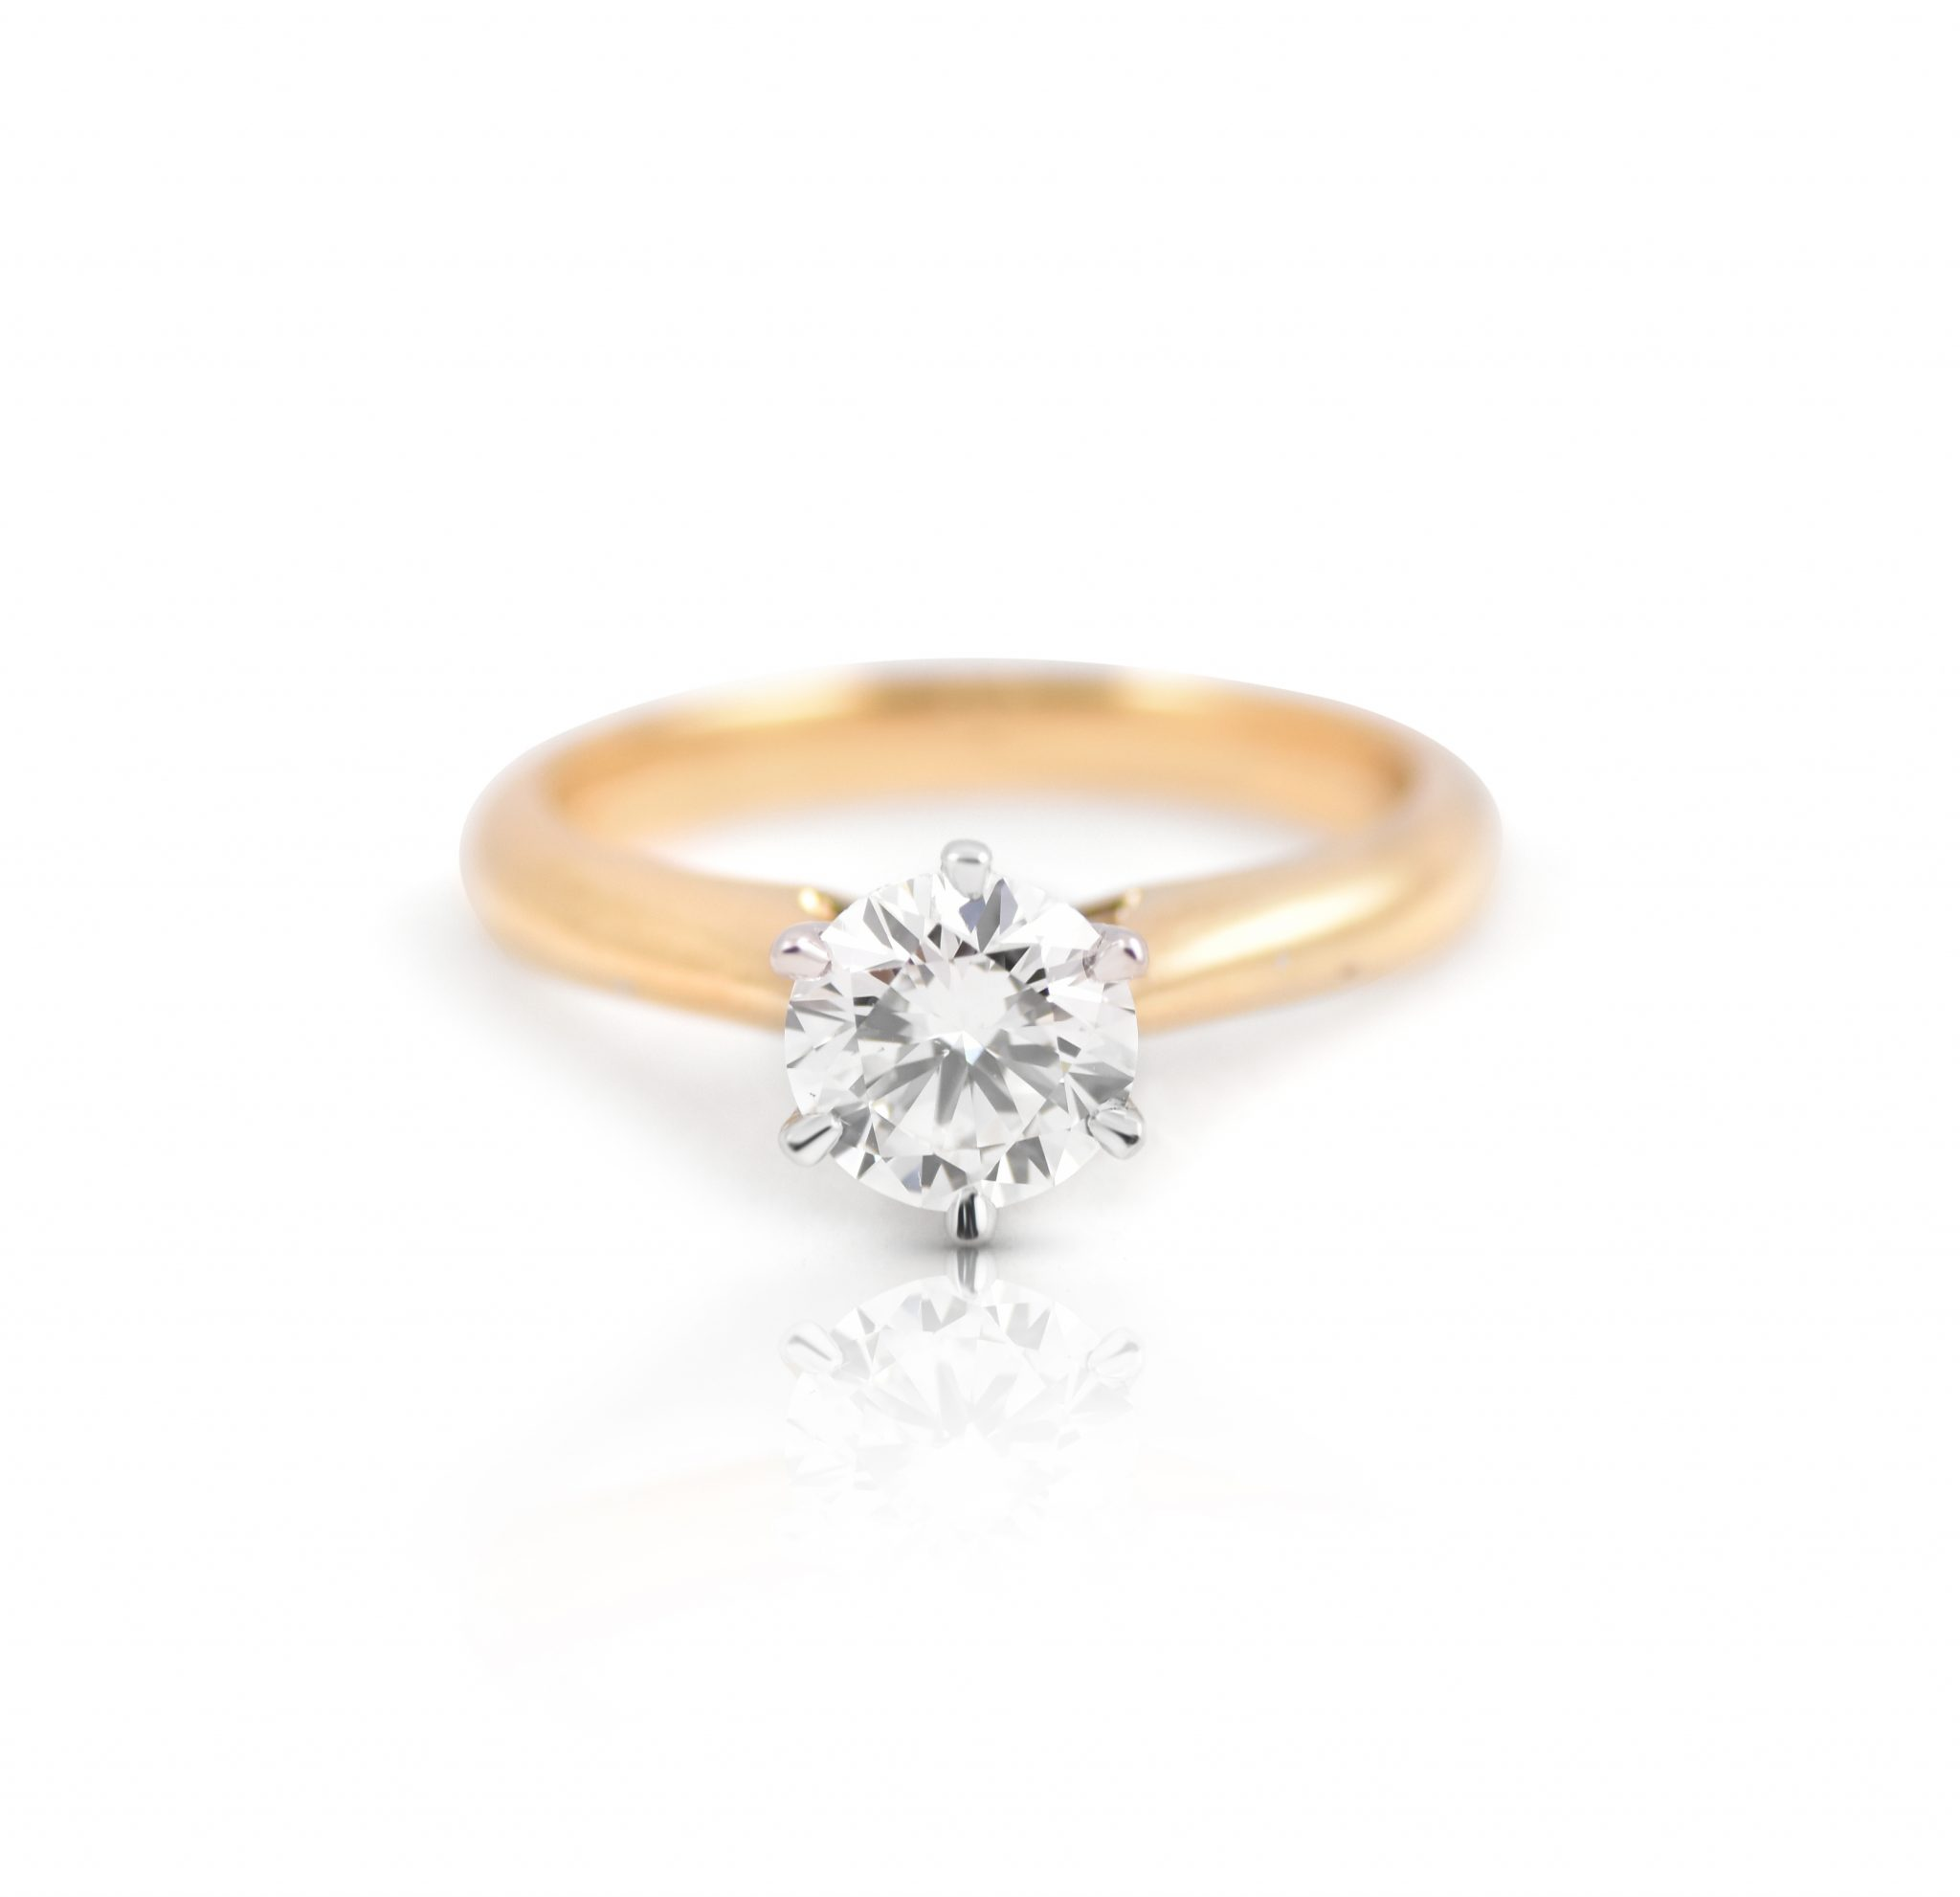 product rings engagement solitaire in diamond ring unique flanders gold cut h